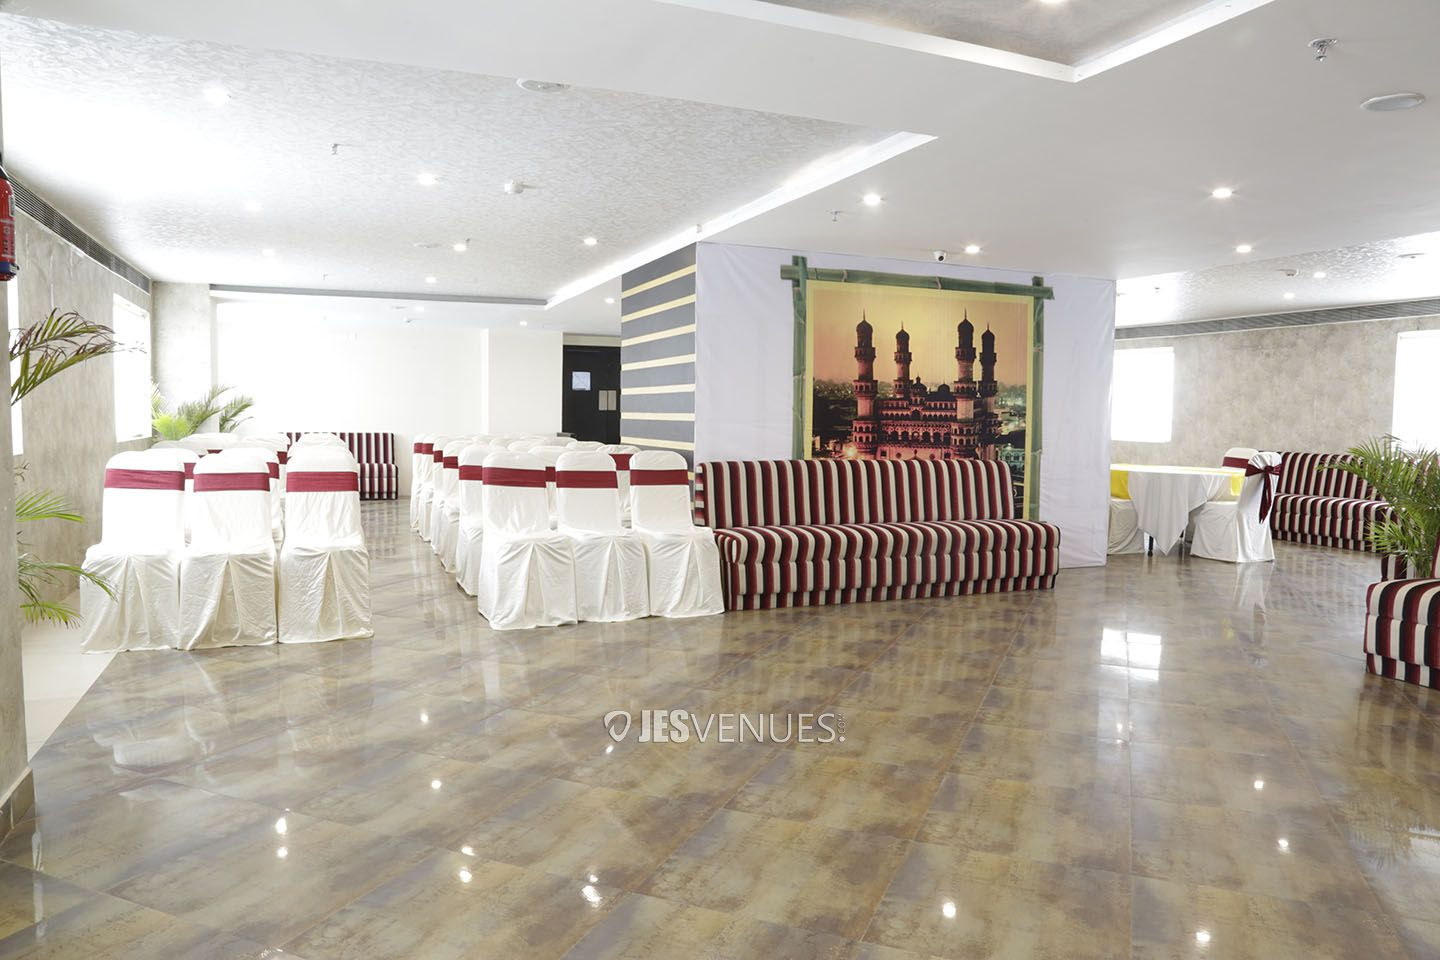 Cosmic Banquet Hall At Kondapur, Hyderabad